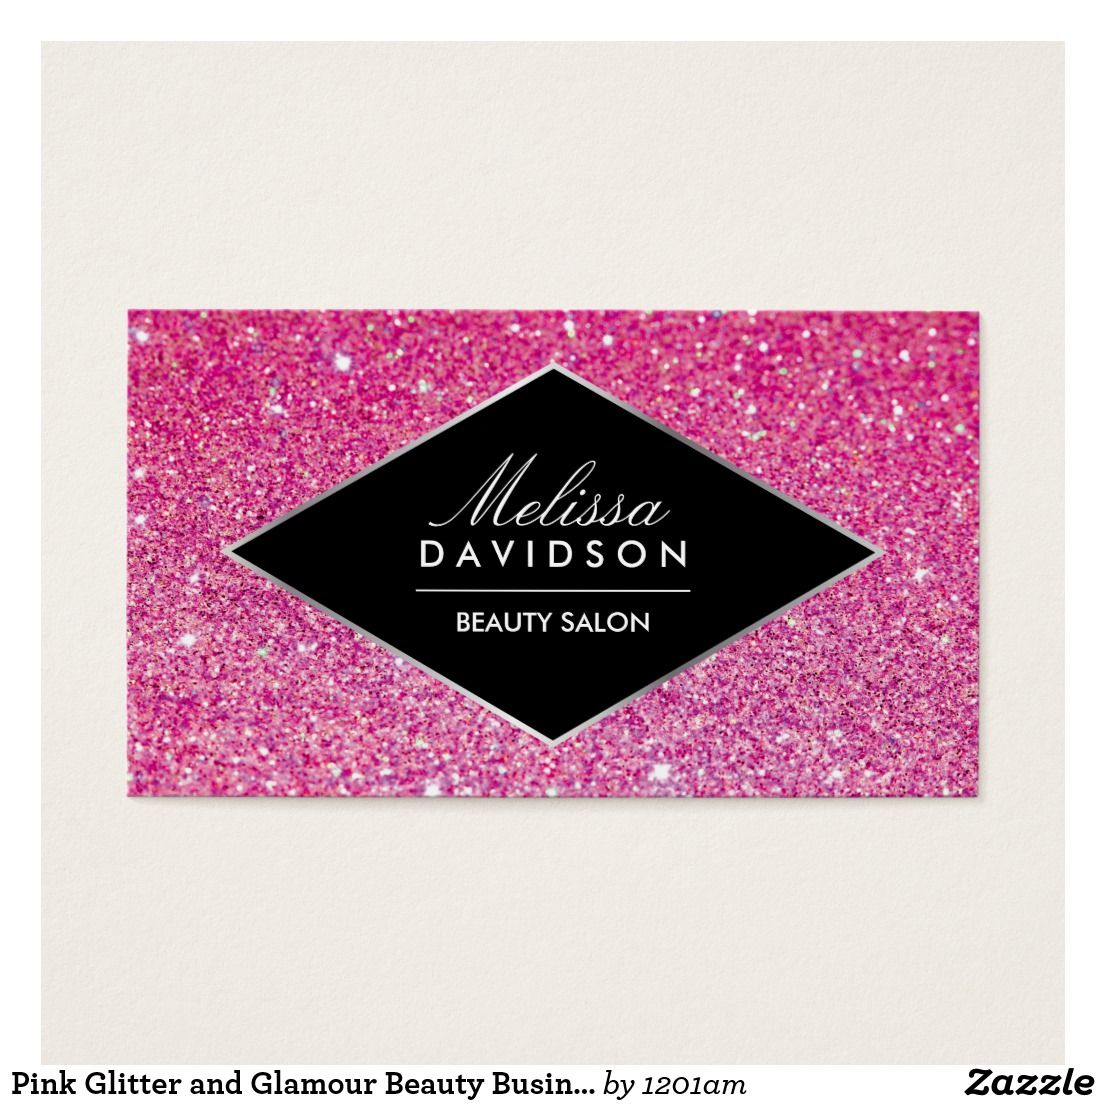 Pink Glitter And Glamour Beauty Business Card Beauty Business